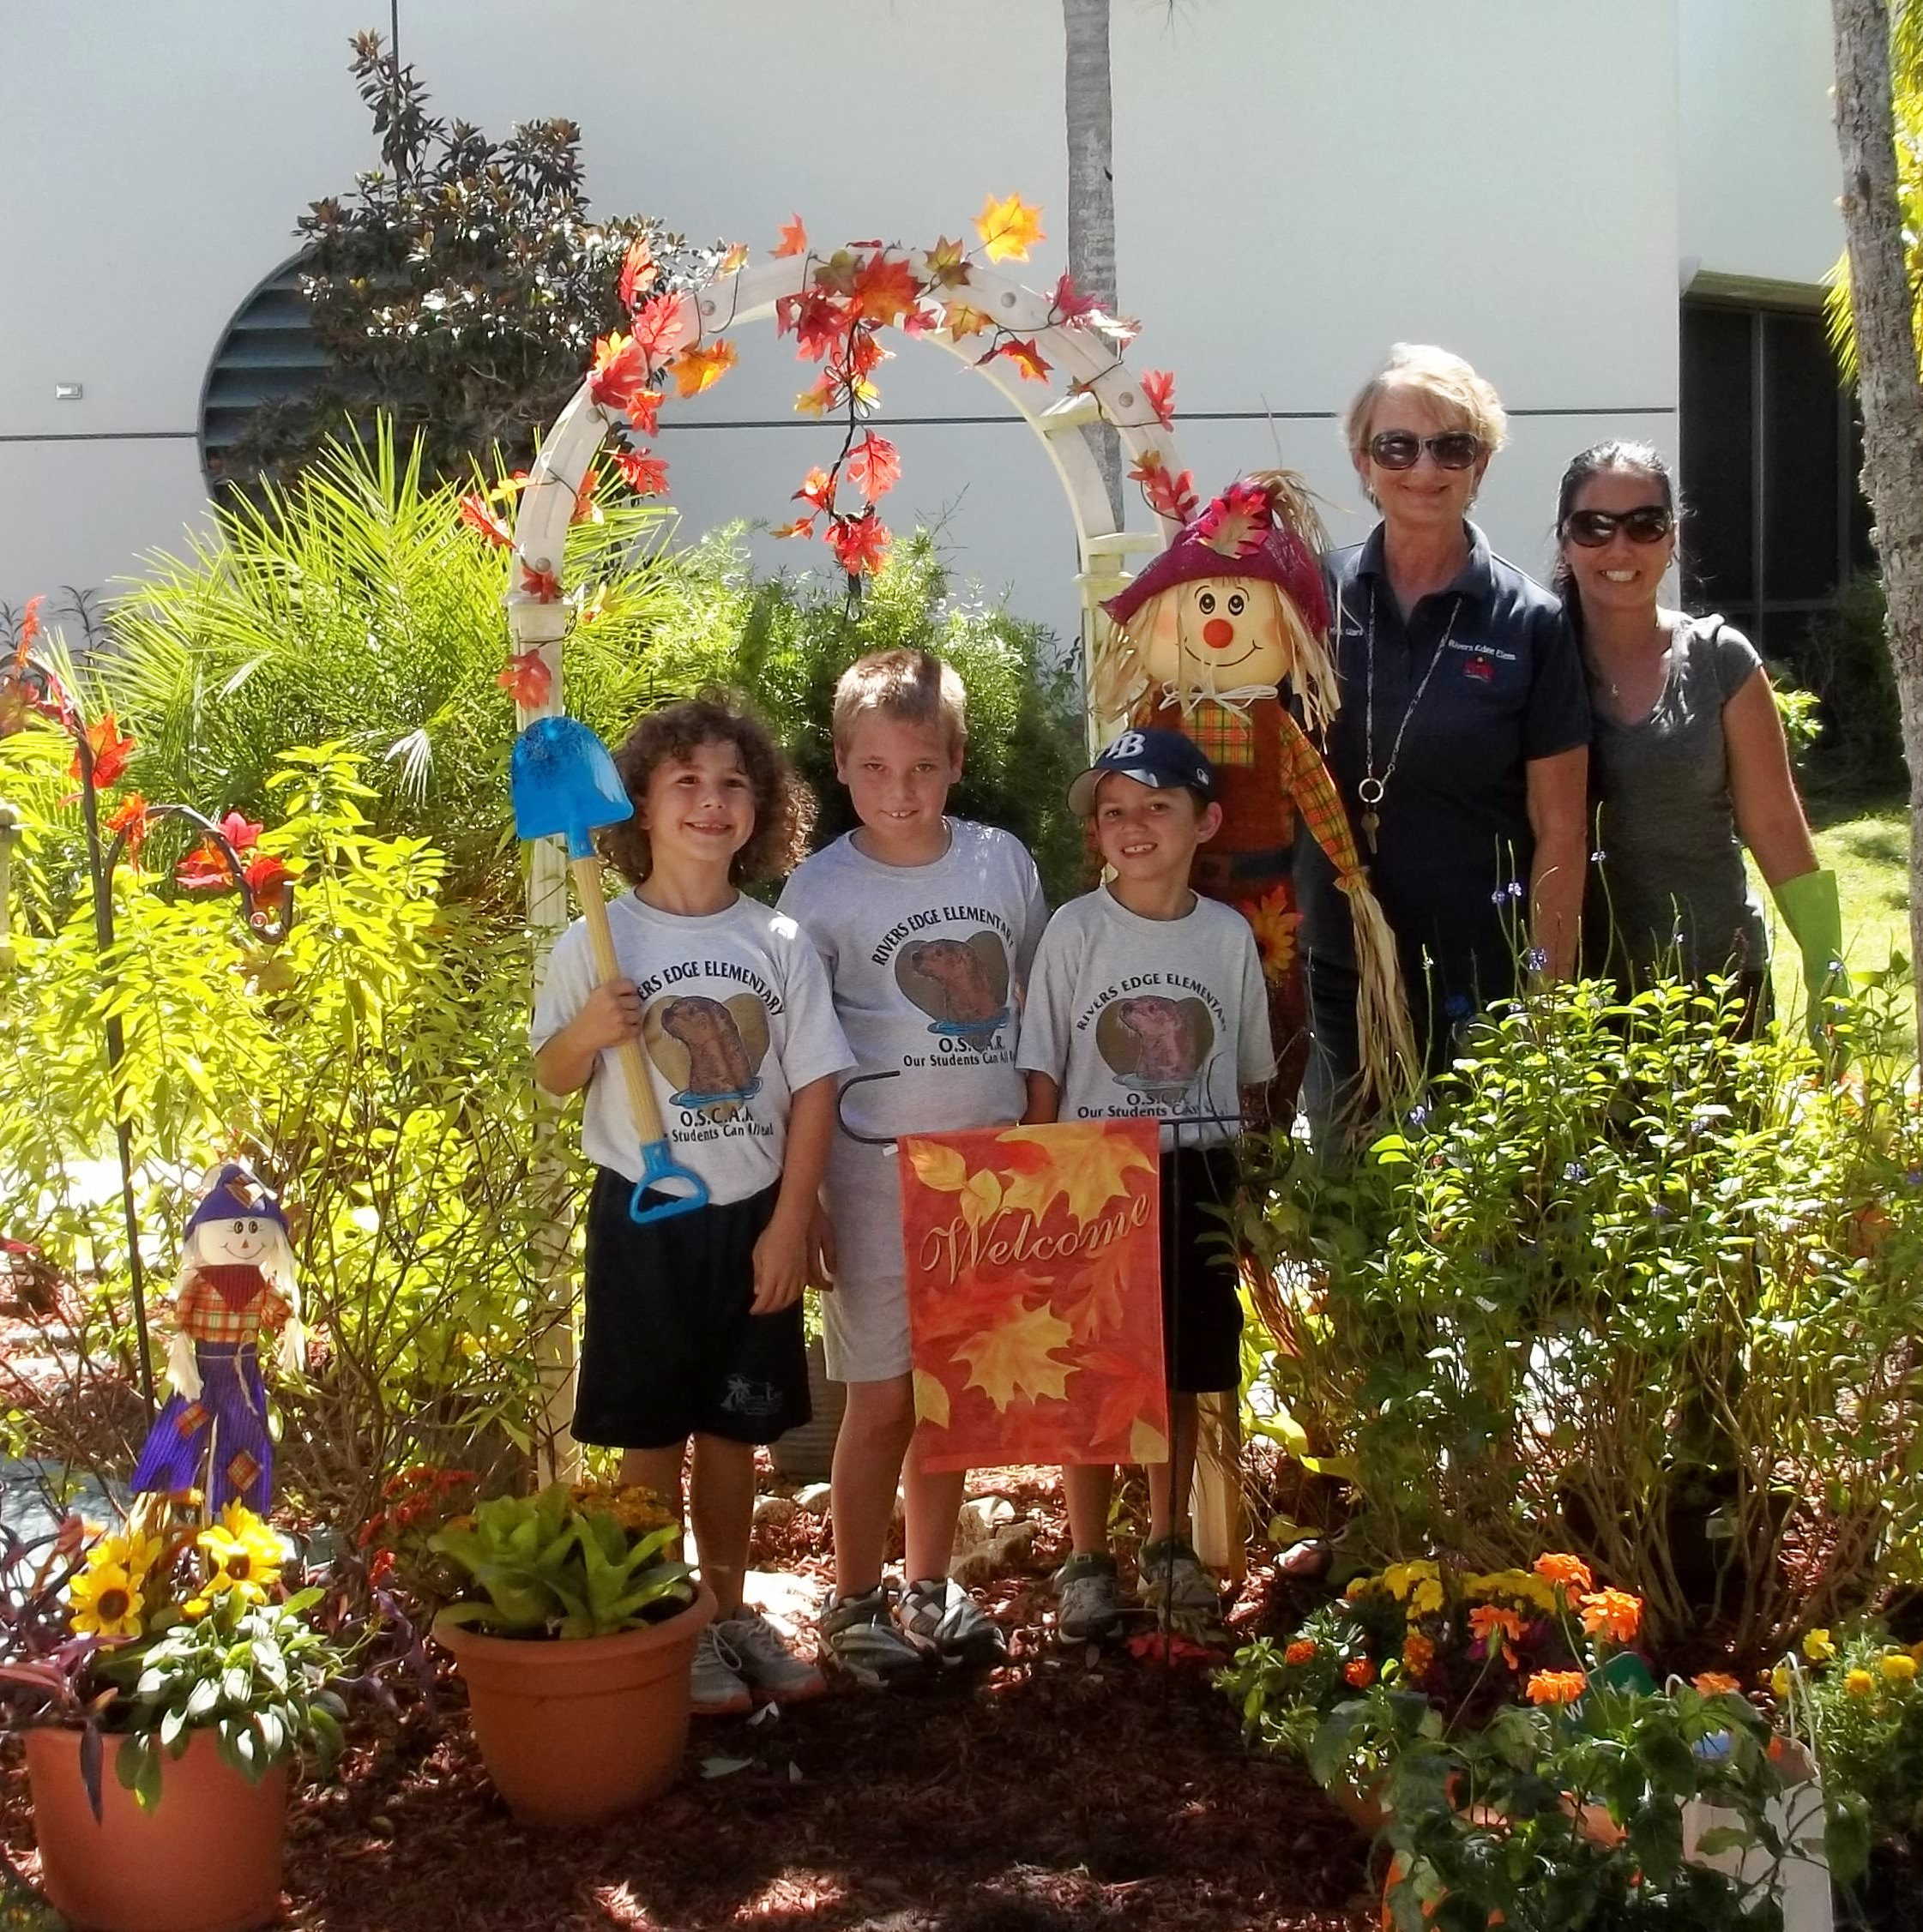 Rivers Edge students, staff and parents enjoy Gardening Day